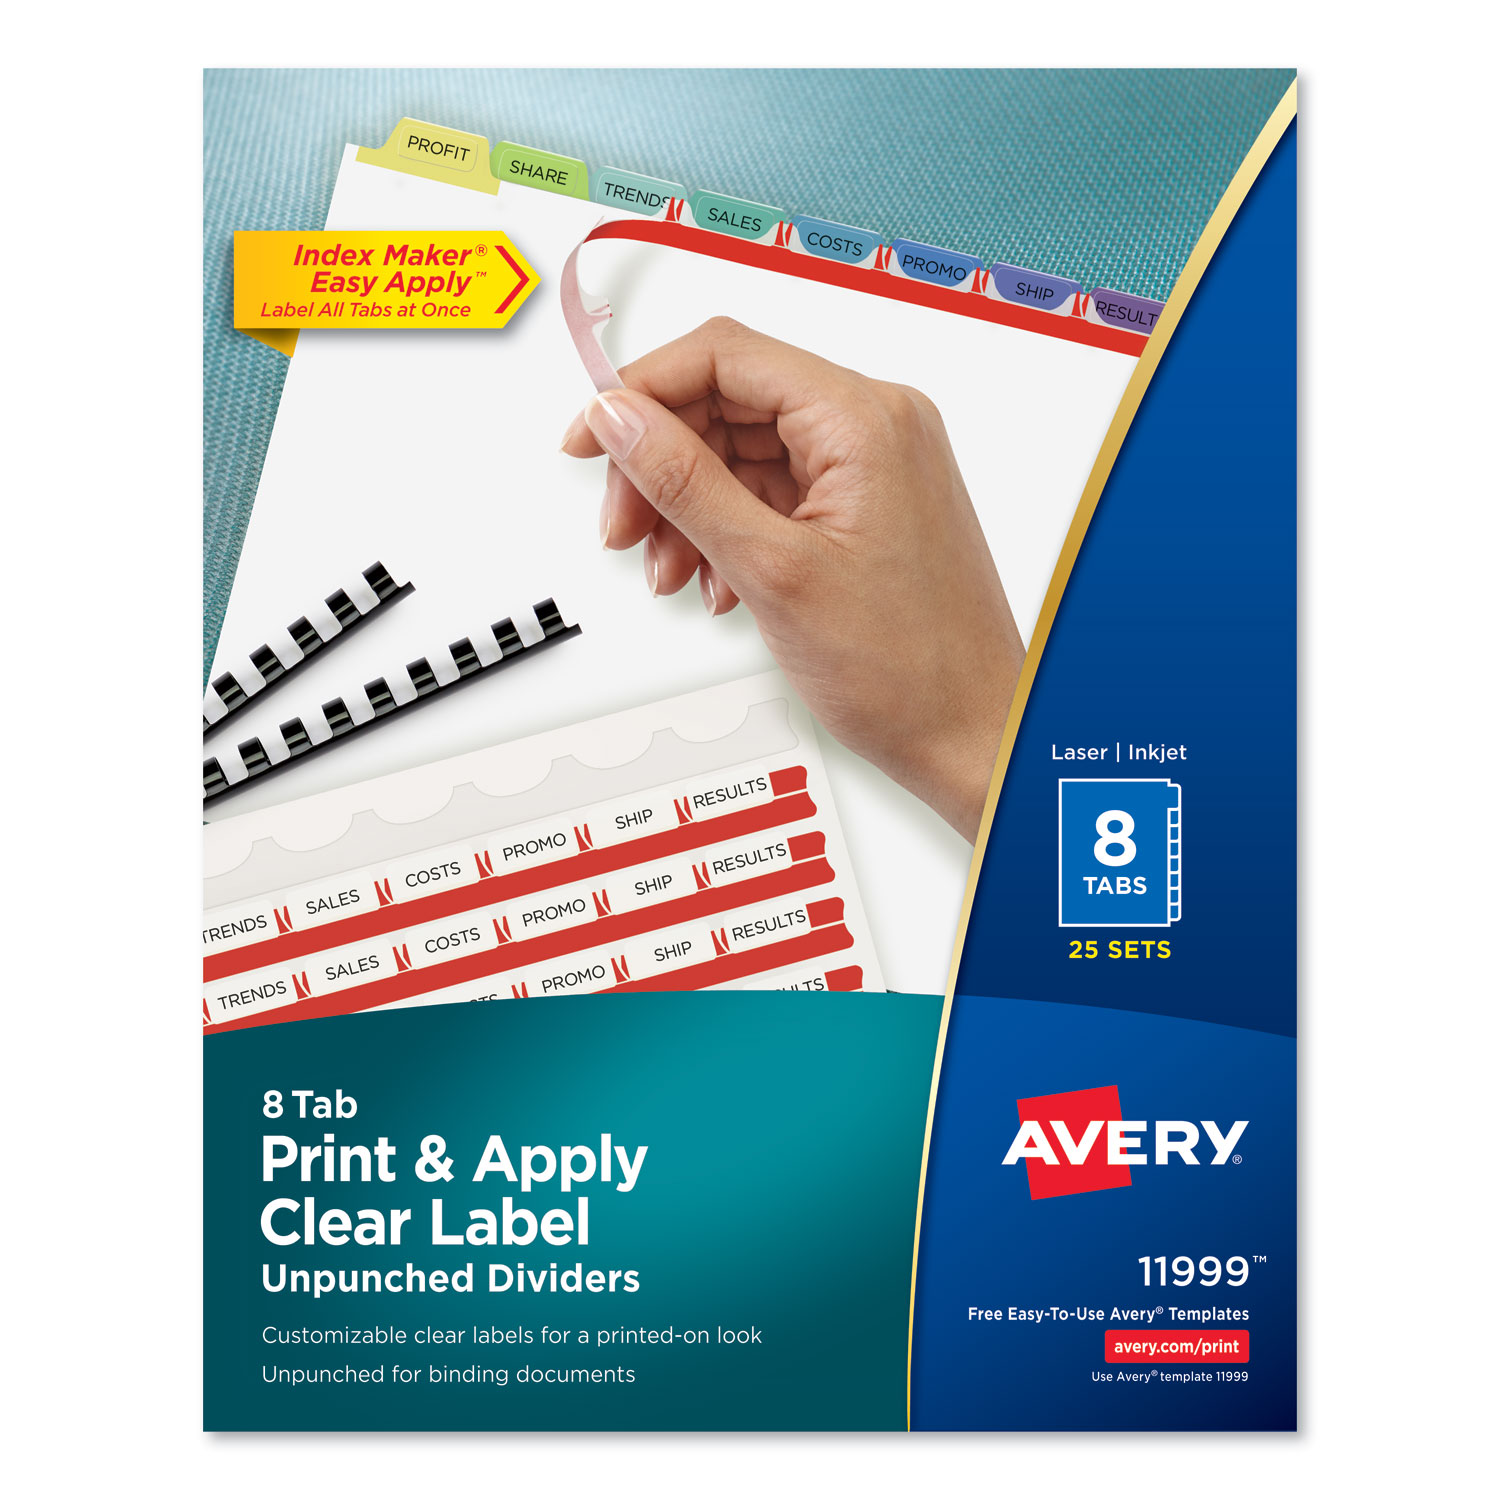 Print and Apply Index Maker Clear Label Unpunched Dividers, 8-Tab, Ltr, 25 Sets